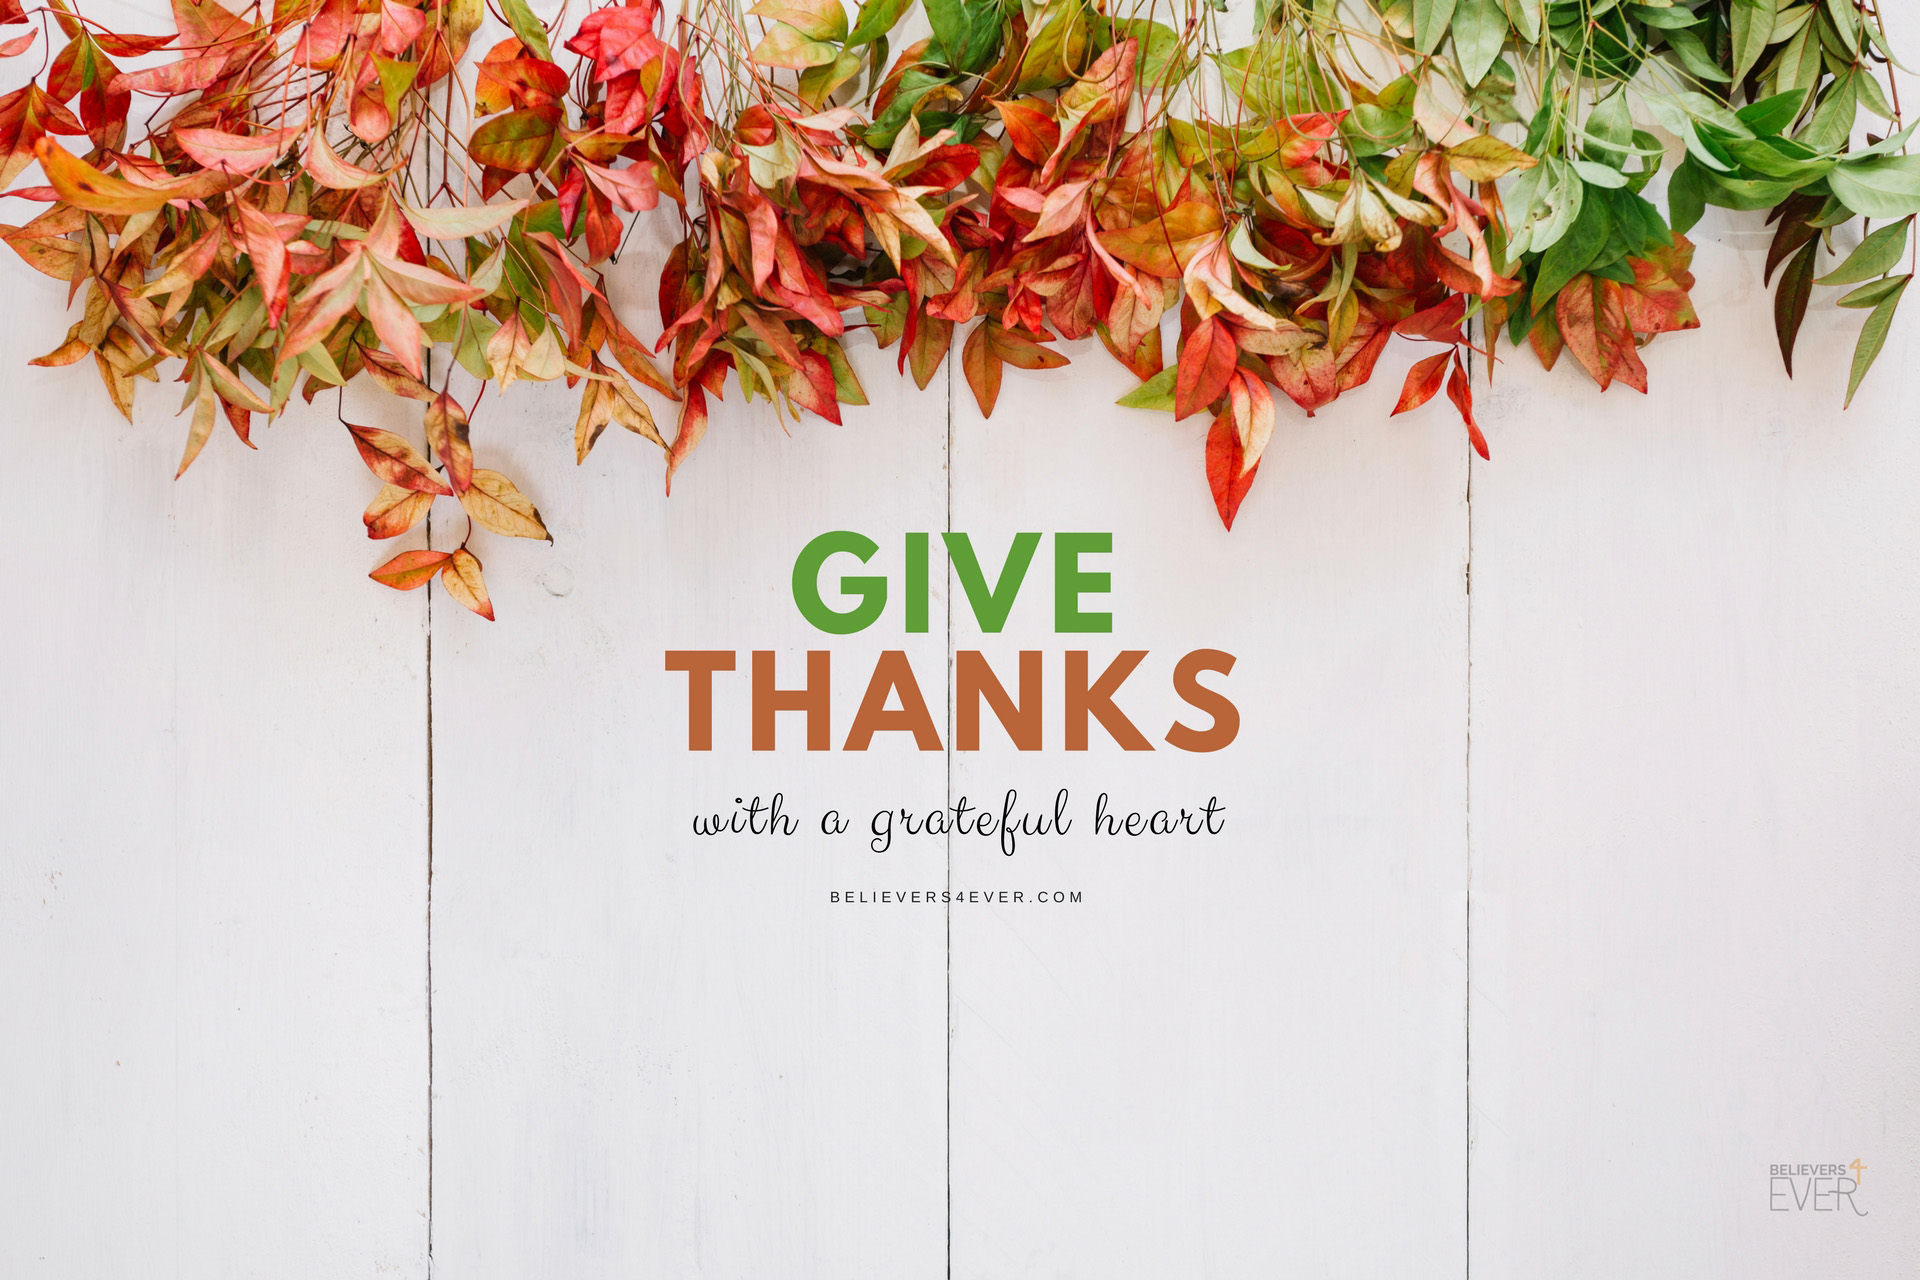 Give thanks with a grateful heart wallpaper